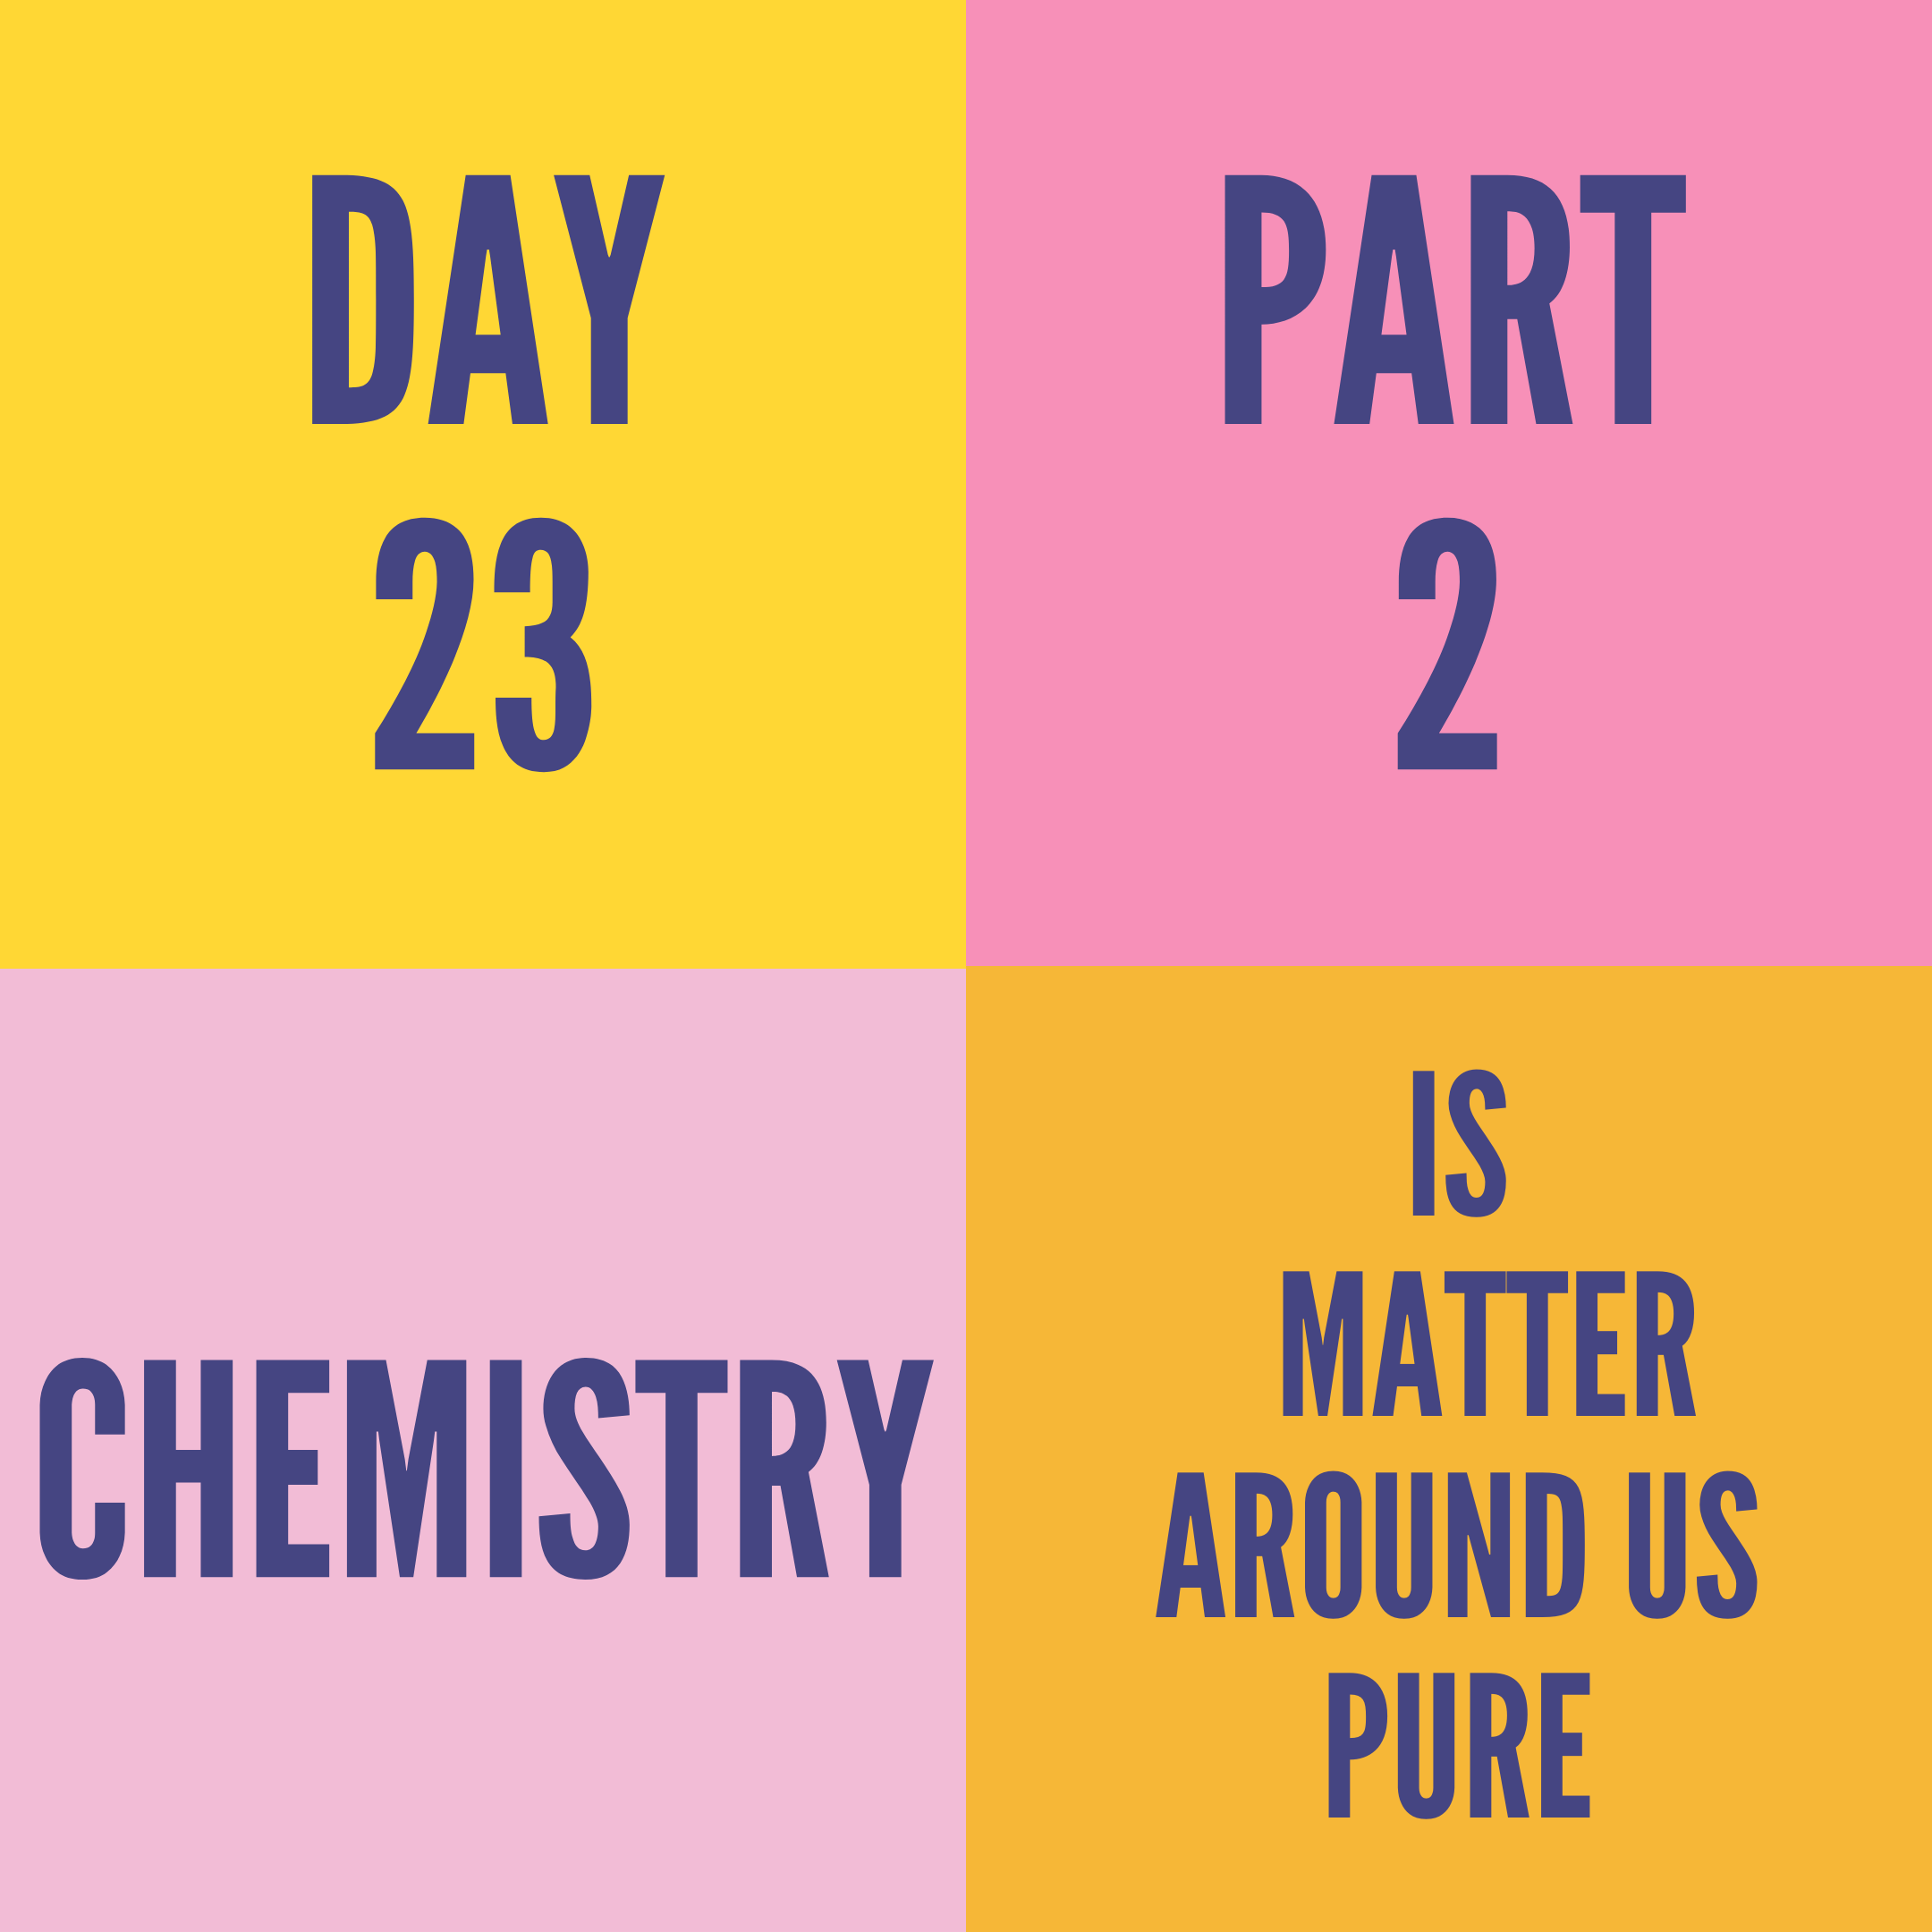 DAY-23 PART-2 IS MATTER AROUND US PURE